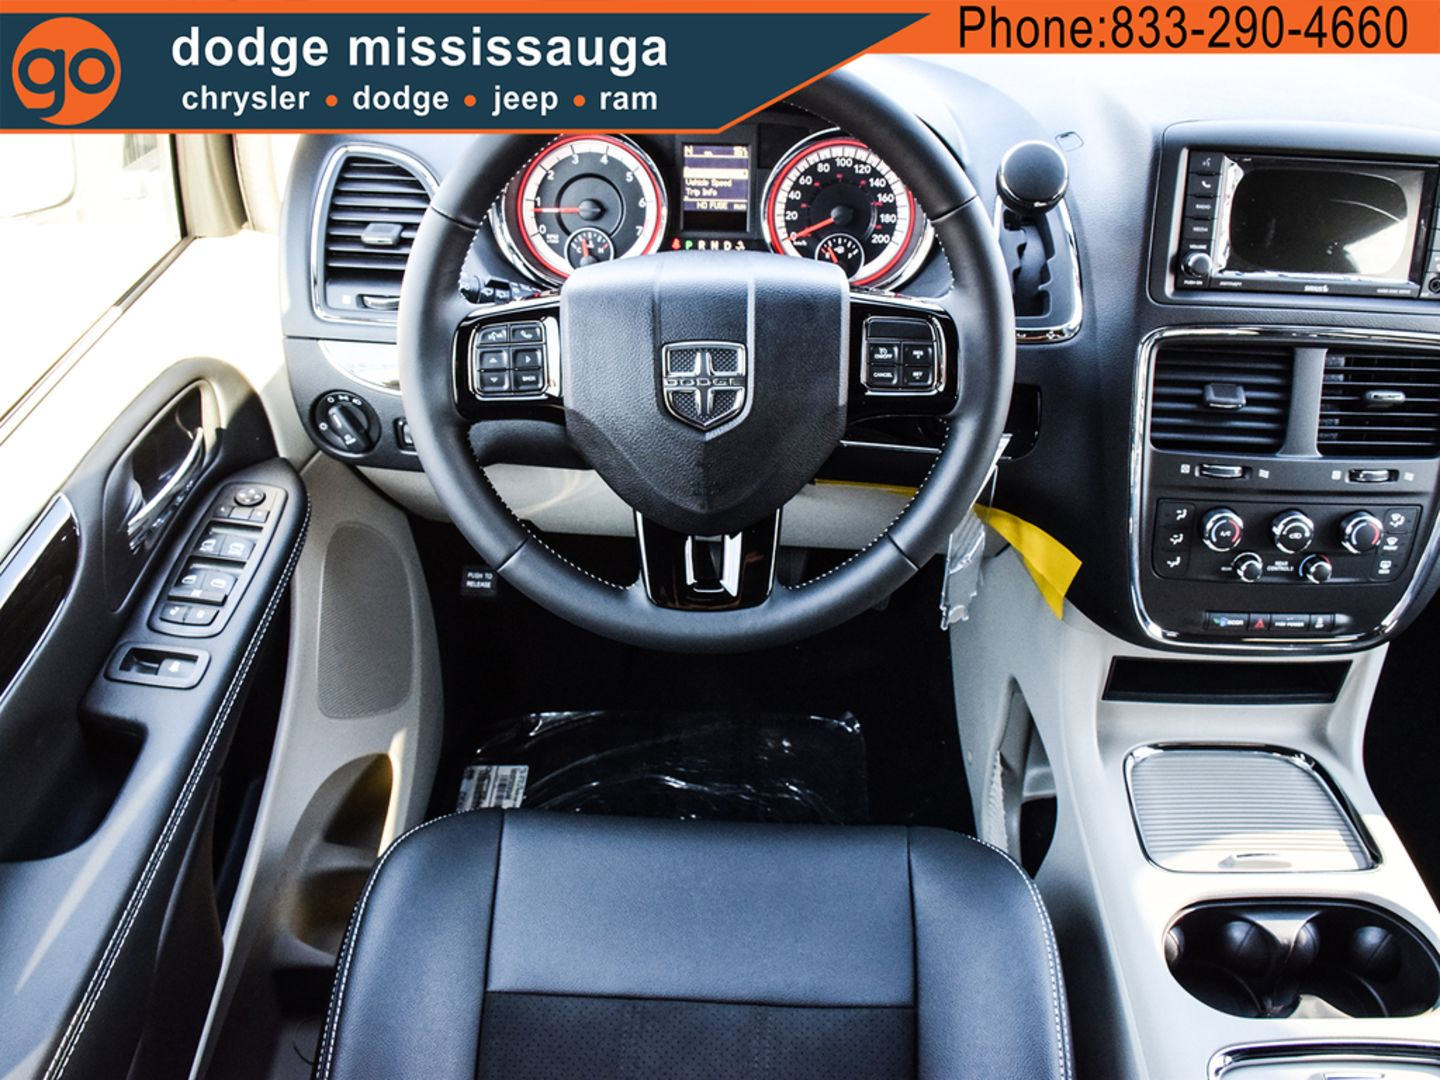 2019 Dodge Grand Caravan SXT Premium Plus for sale in Mississauga, Ontario